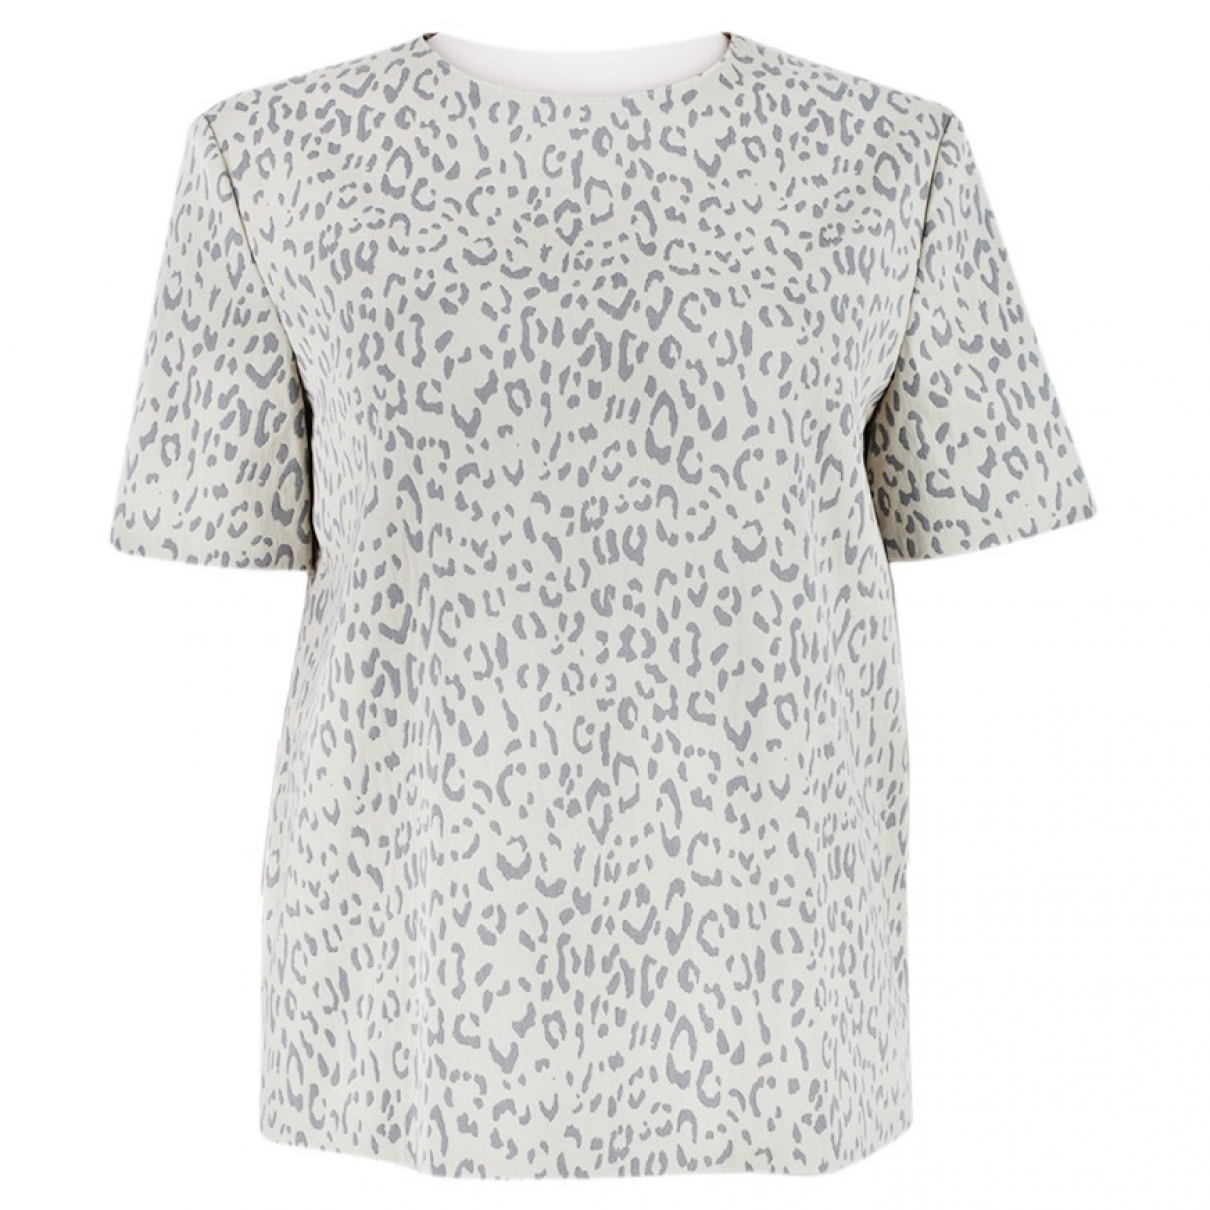 Stella Mccartney \N Grey Cotton  top for Women 38 IT